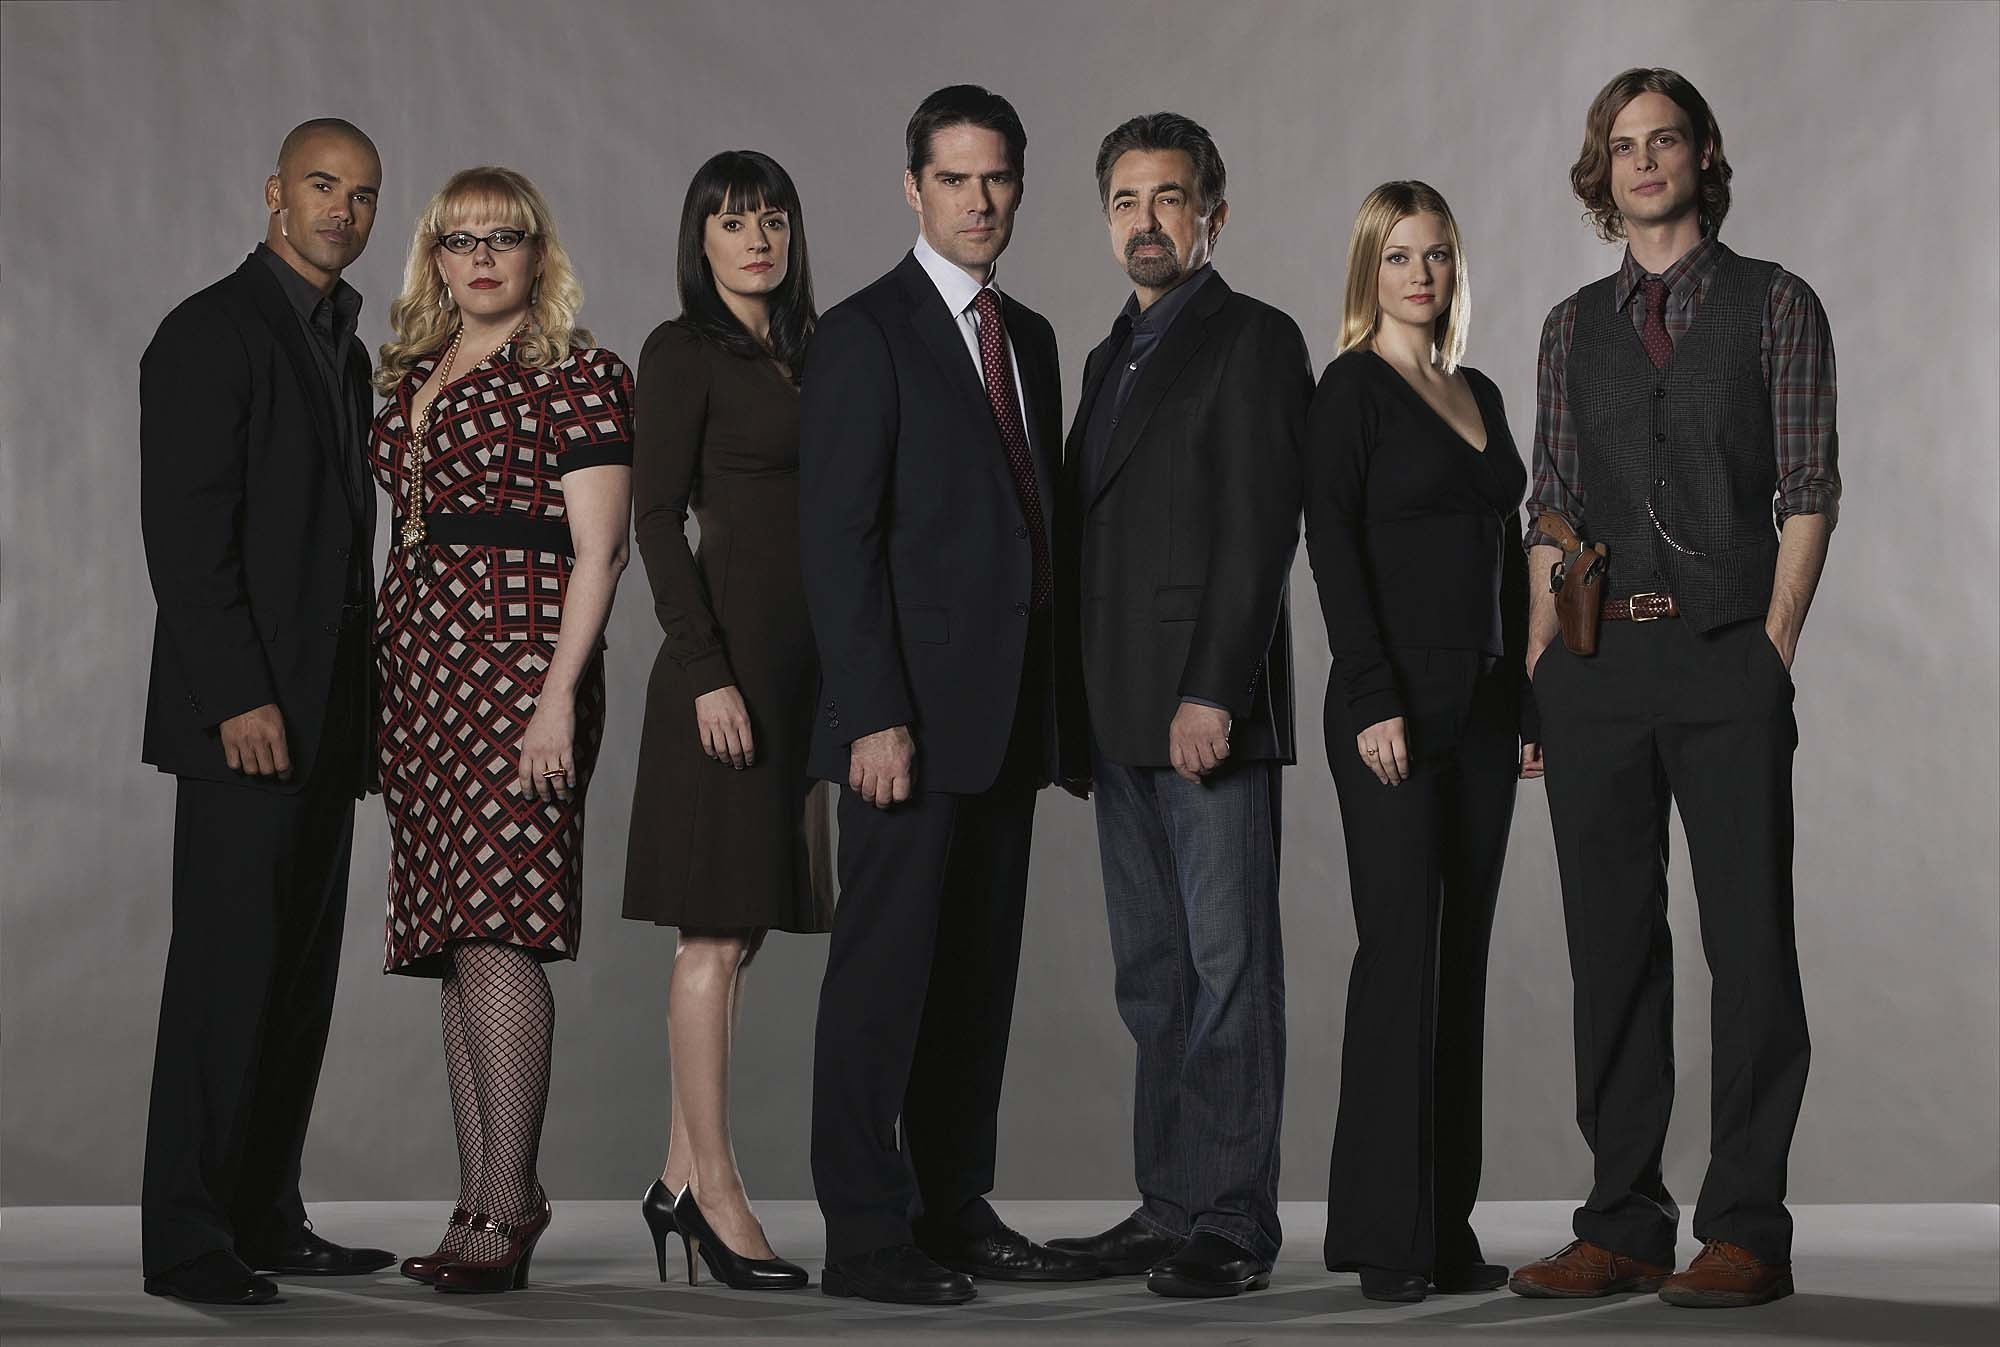 Criminal Minds Cast (HQ)